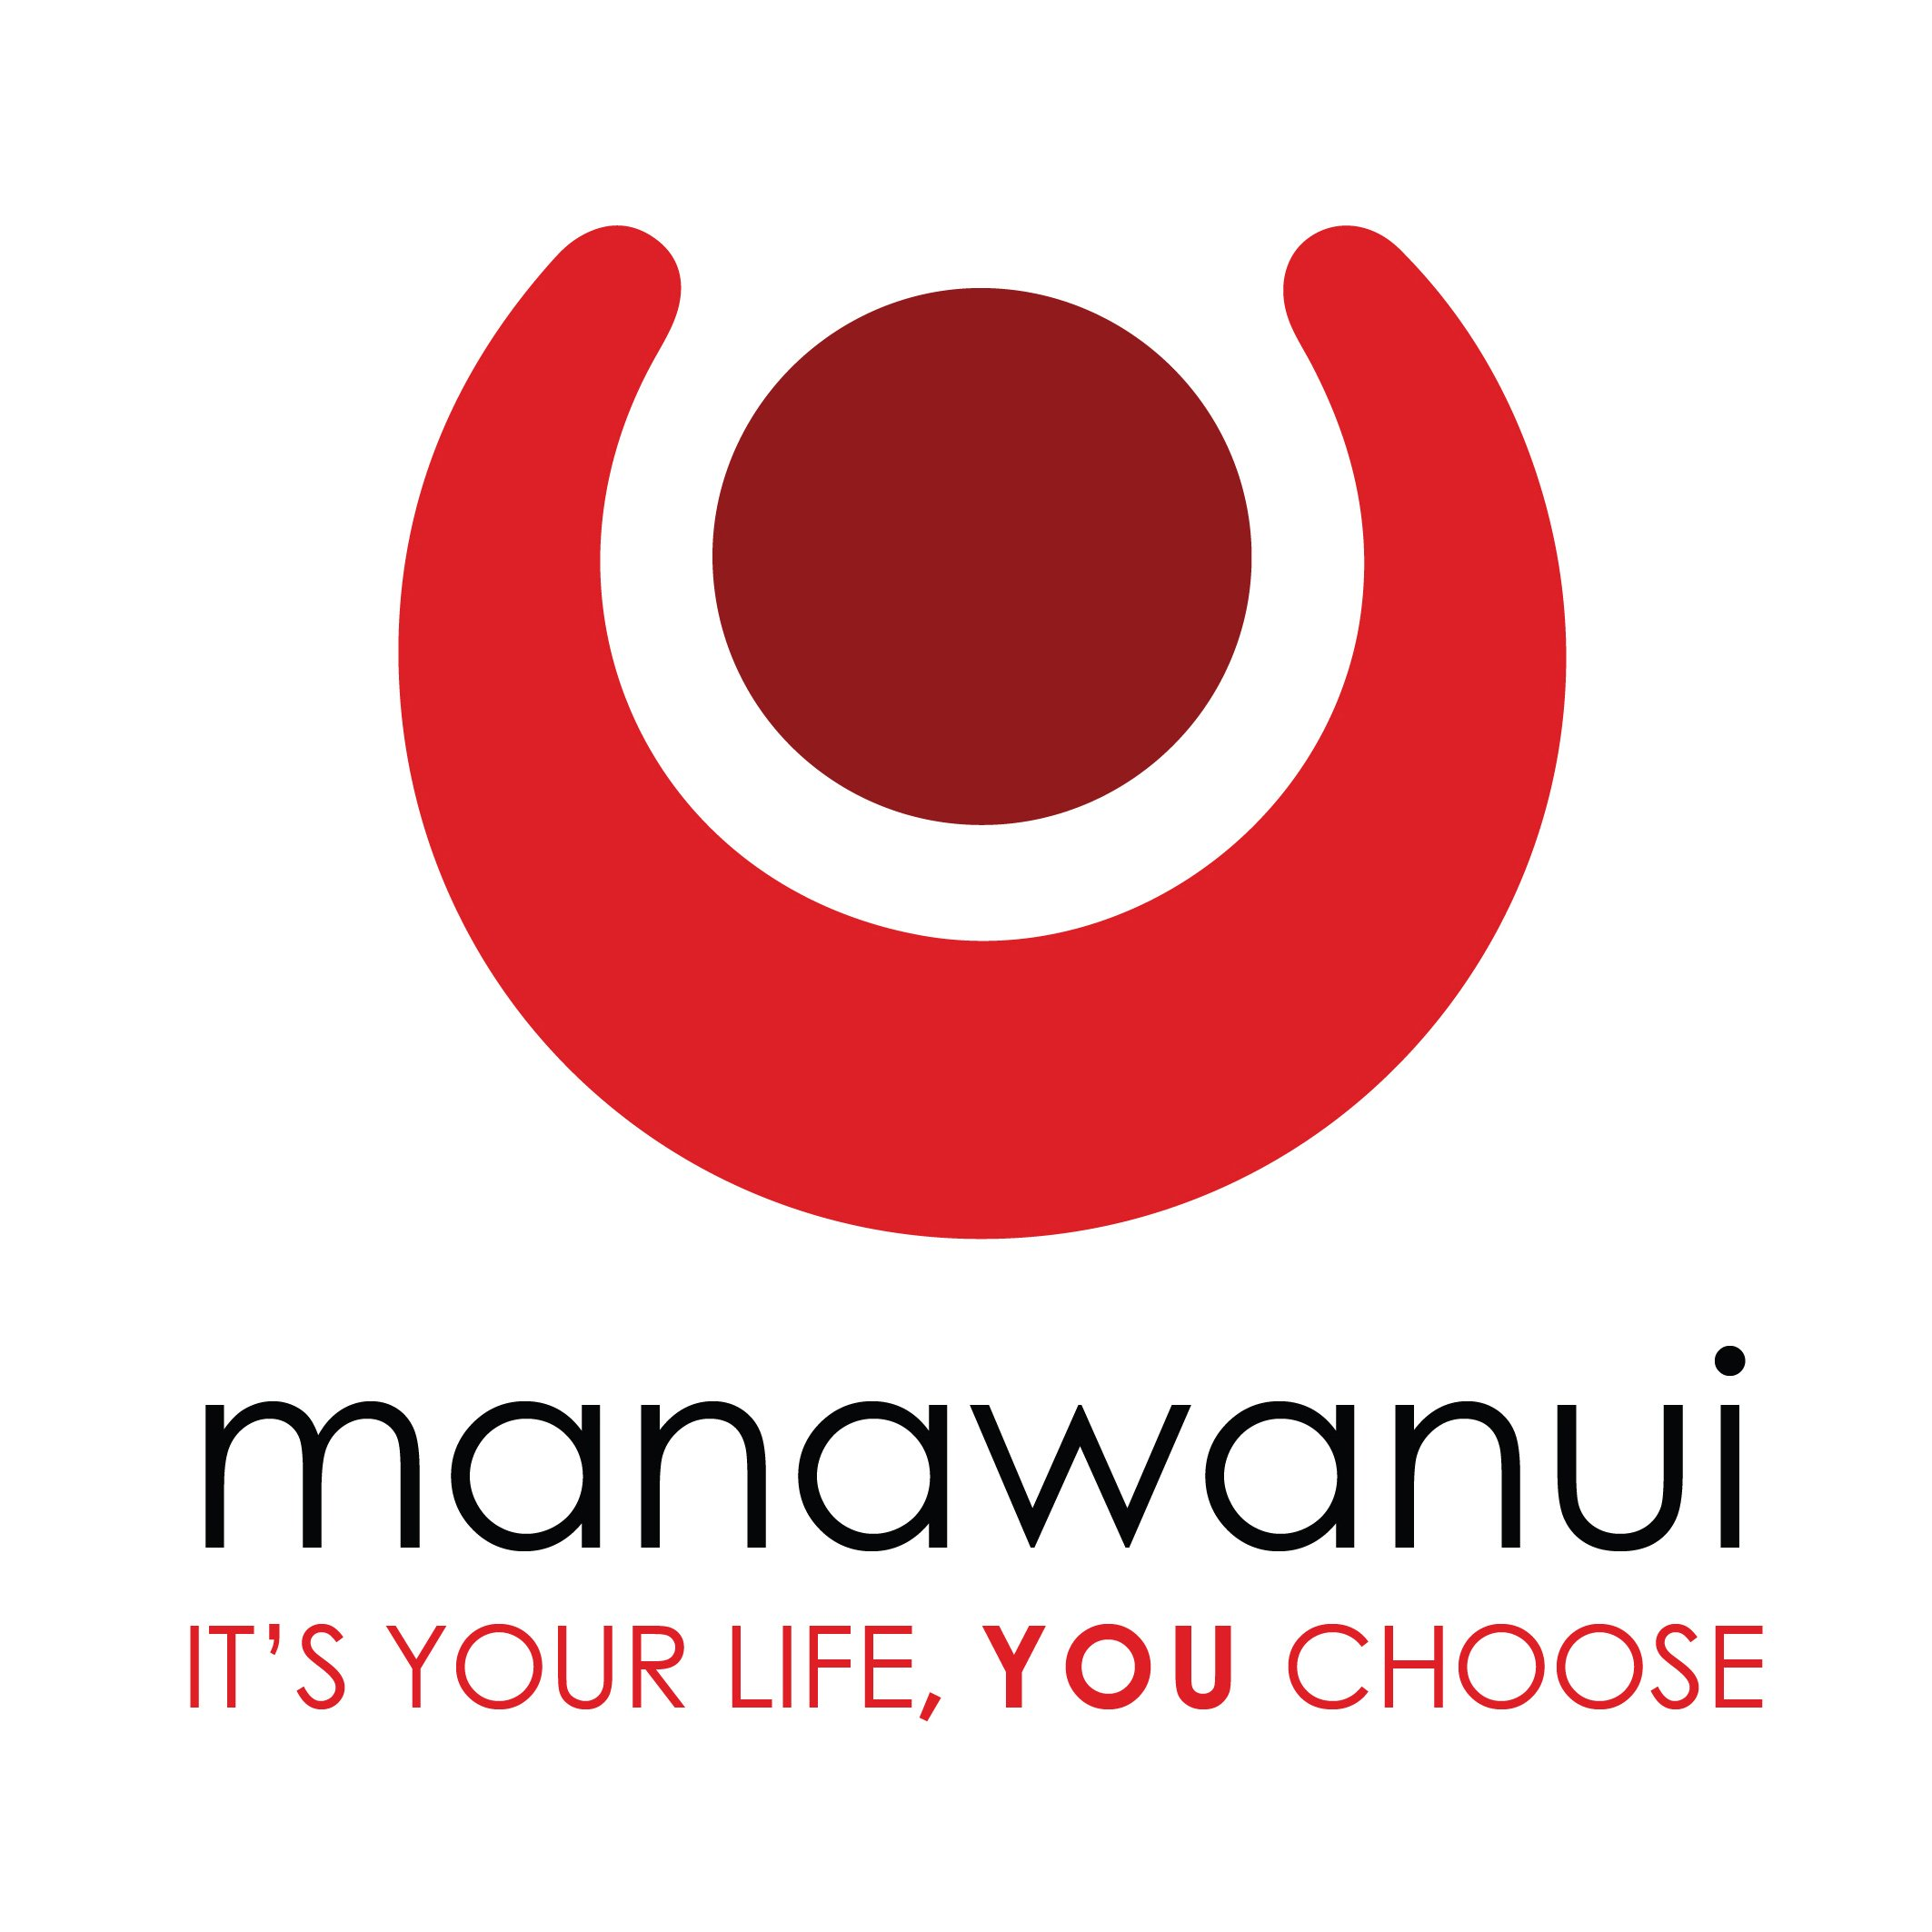 Manawanui, It's your life, You Choose